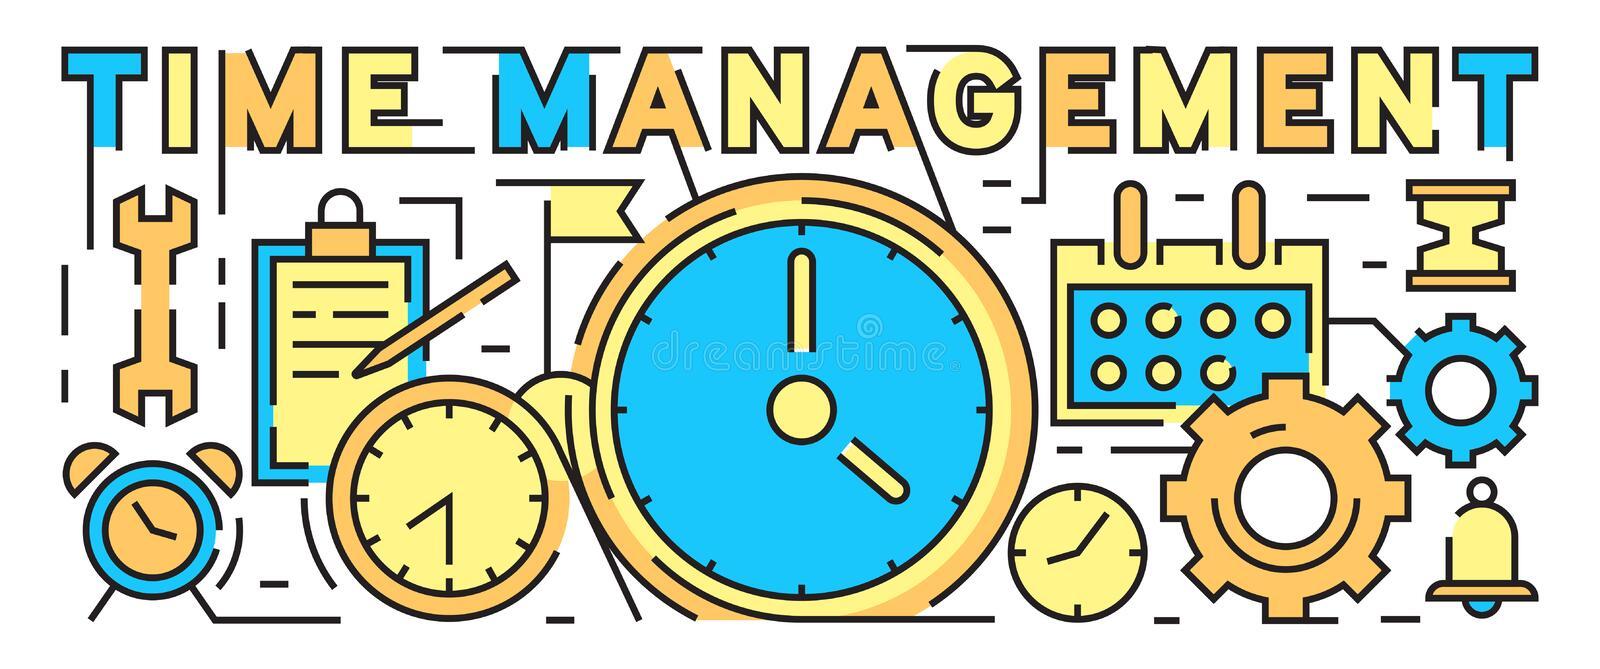 Time Management Concept. Time Is Money Bussines Concept. Colorful And Youthful Flat Line Design. Youth Style Vector vector illustration